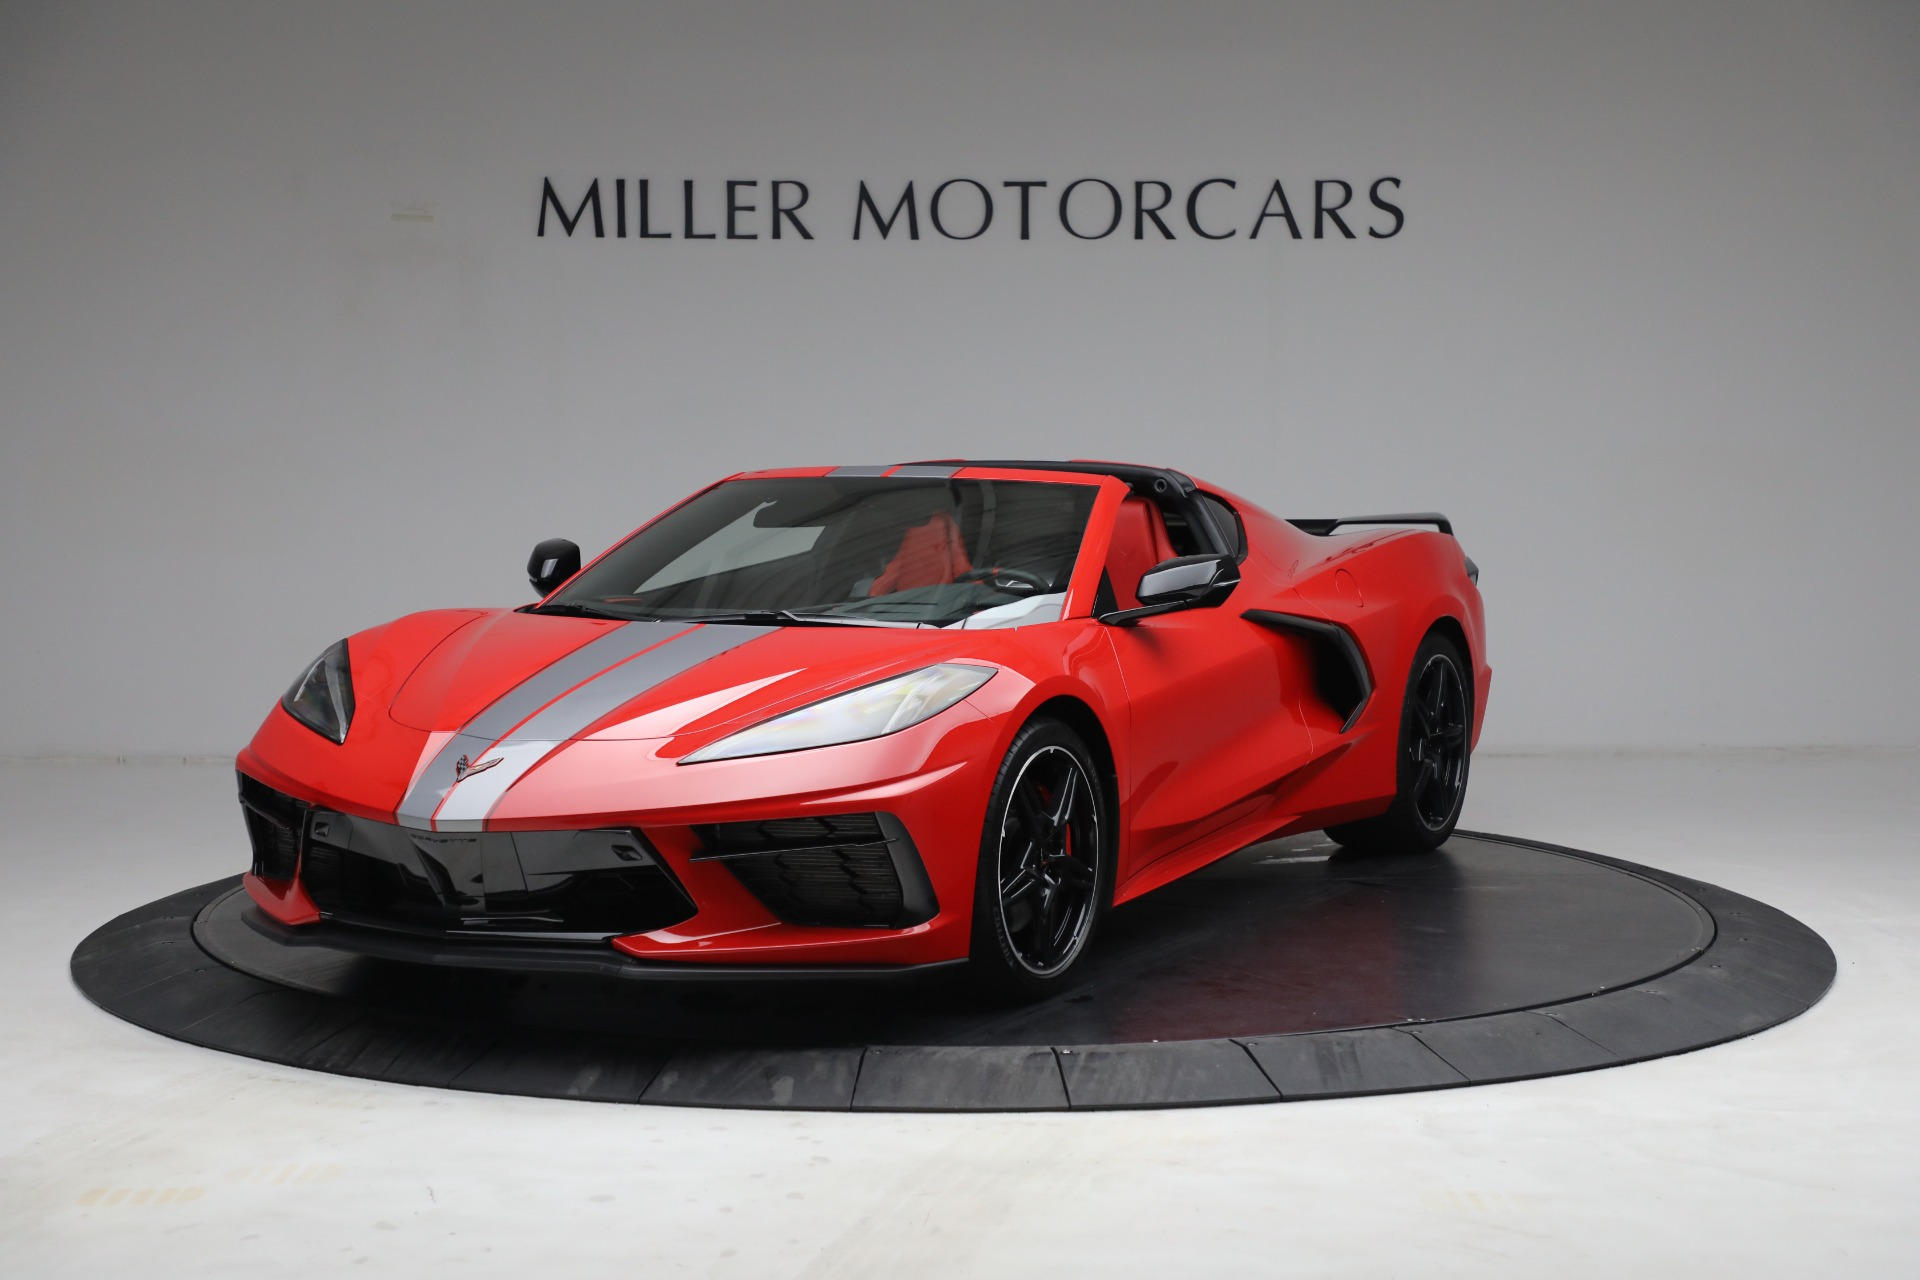 Used 2020 Chevrolet Corvette Stingray for sale Sold at McLaren Greenwich in Greenwich CT 06830 1